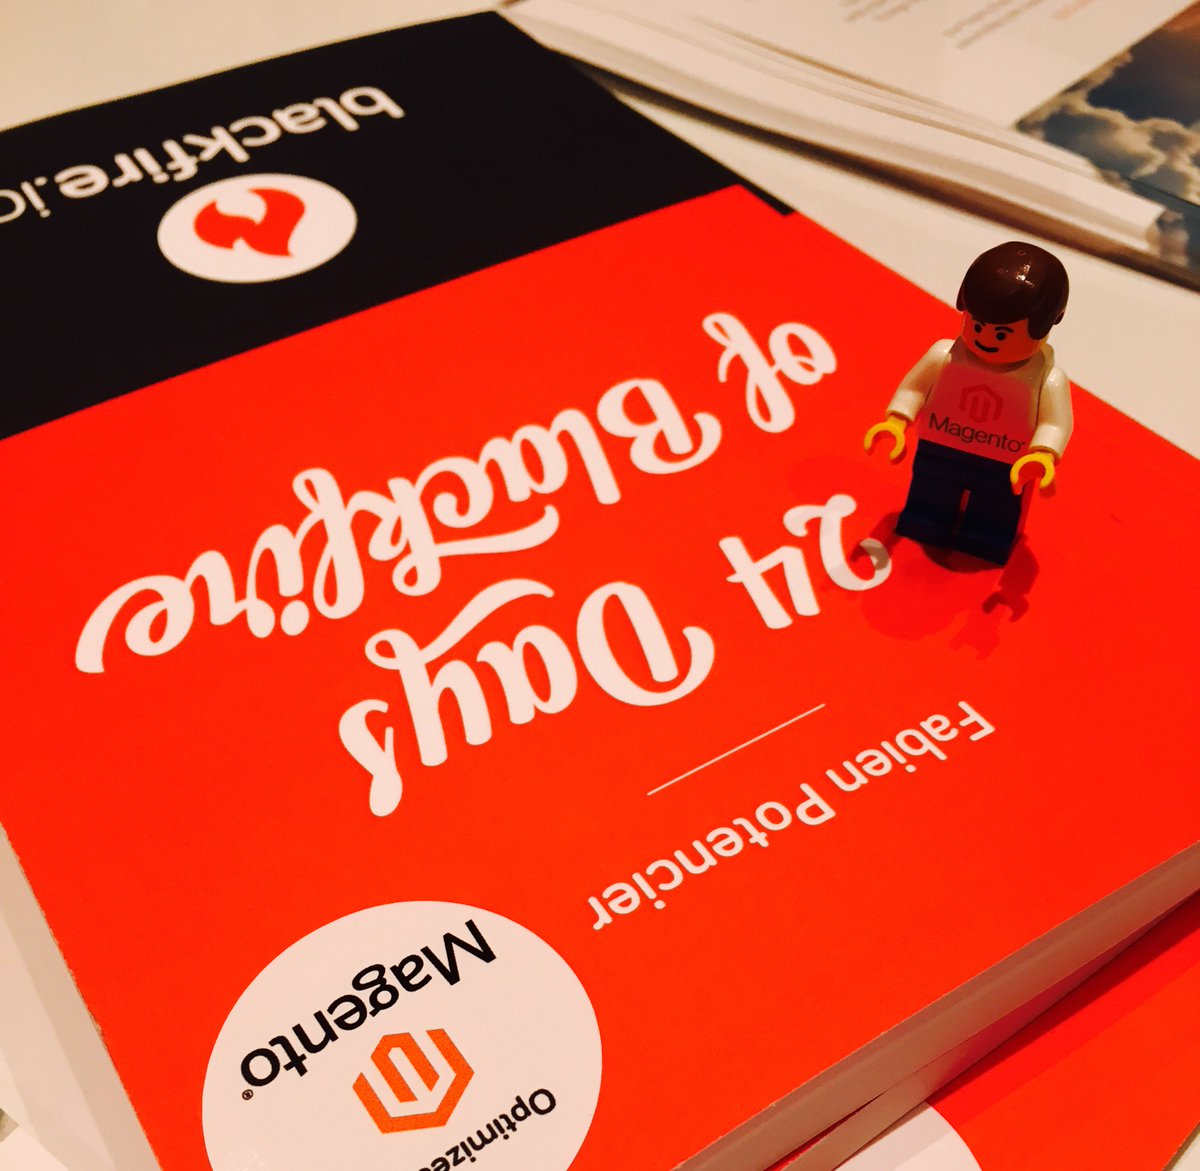 magento: This mini #Magento man needs a home. Next #Trivia Q: Where is the #MagentoCloud platform hosted? #magentoimagine https://t.co/f0KVb7fXuQ